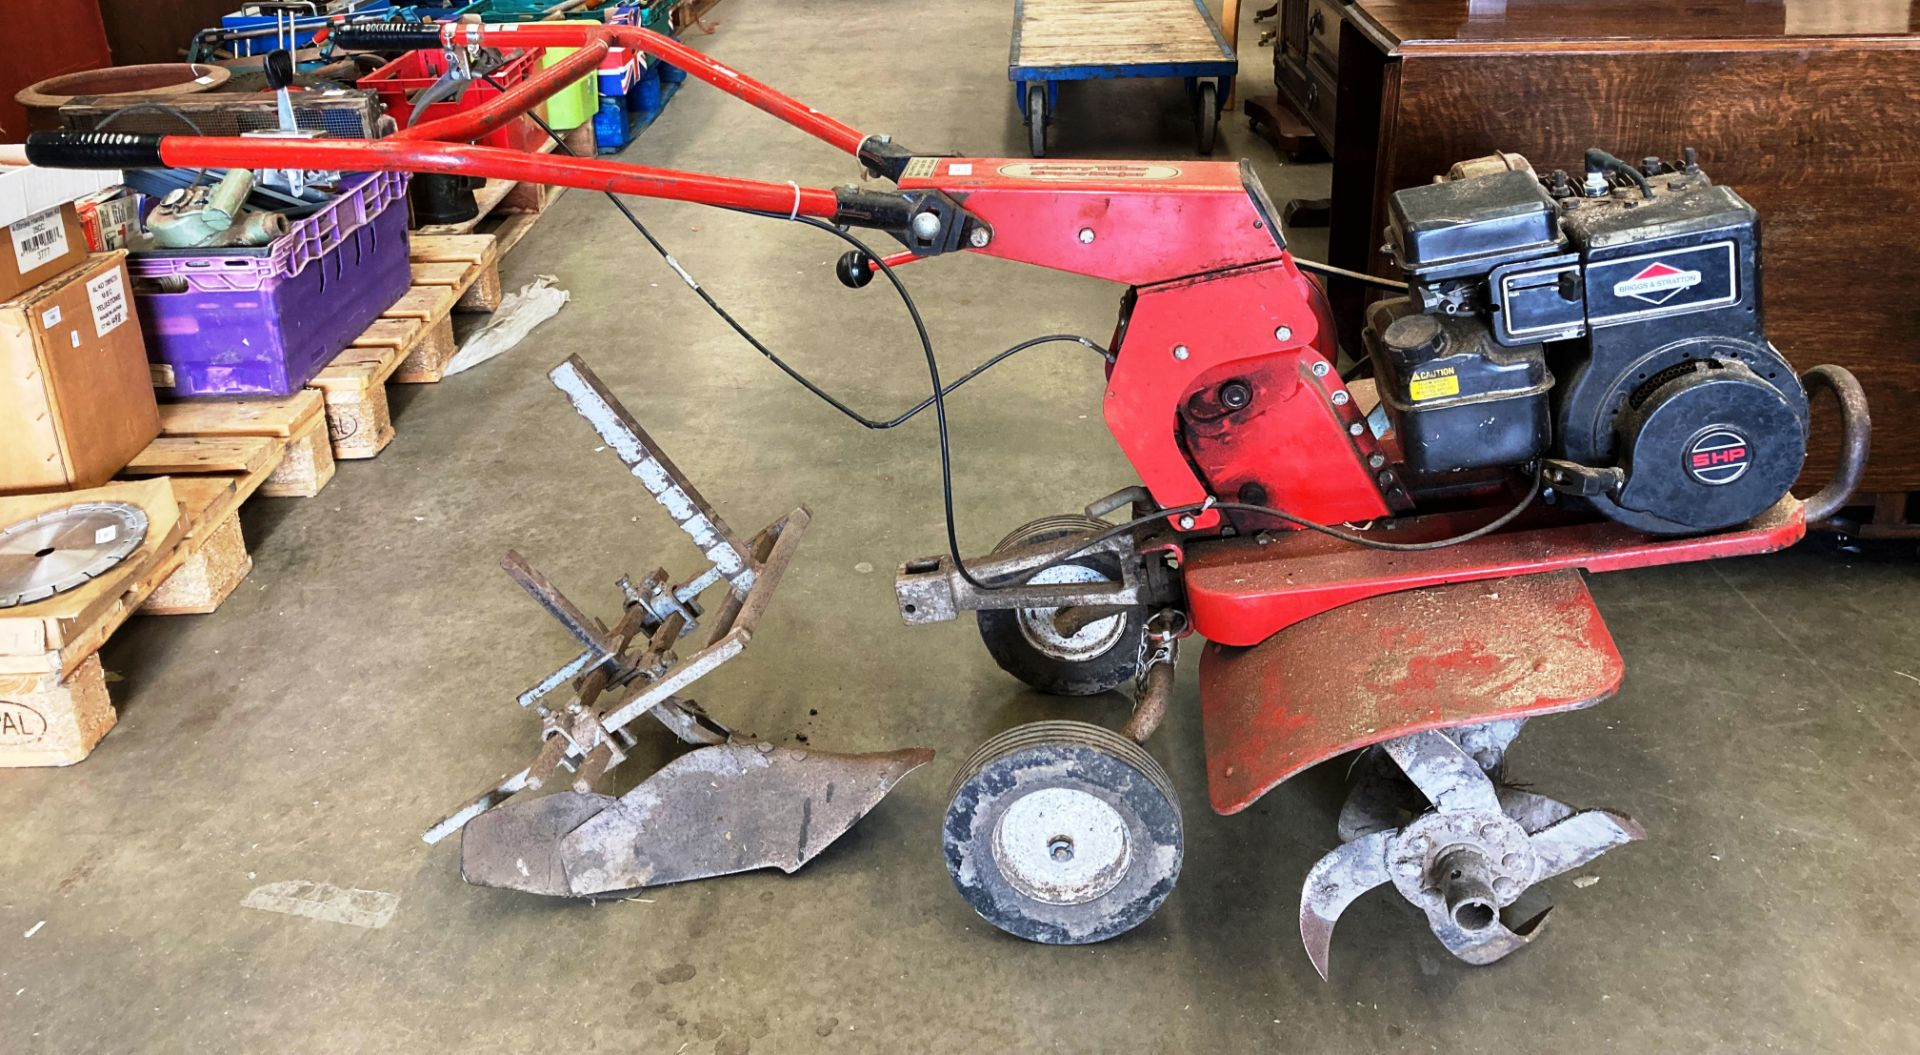 A Wolseley Merry Tiller Super Major Cultivator with Briggs & Stratton 5HP petrol engine and